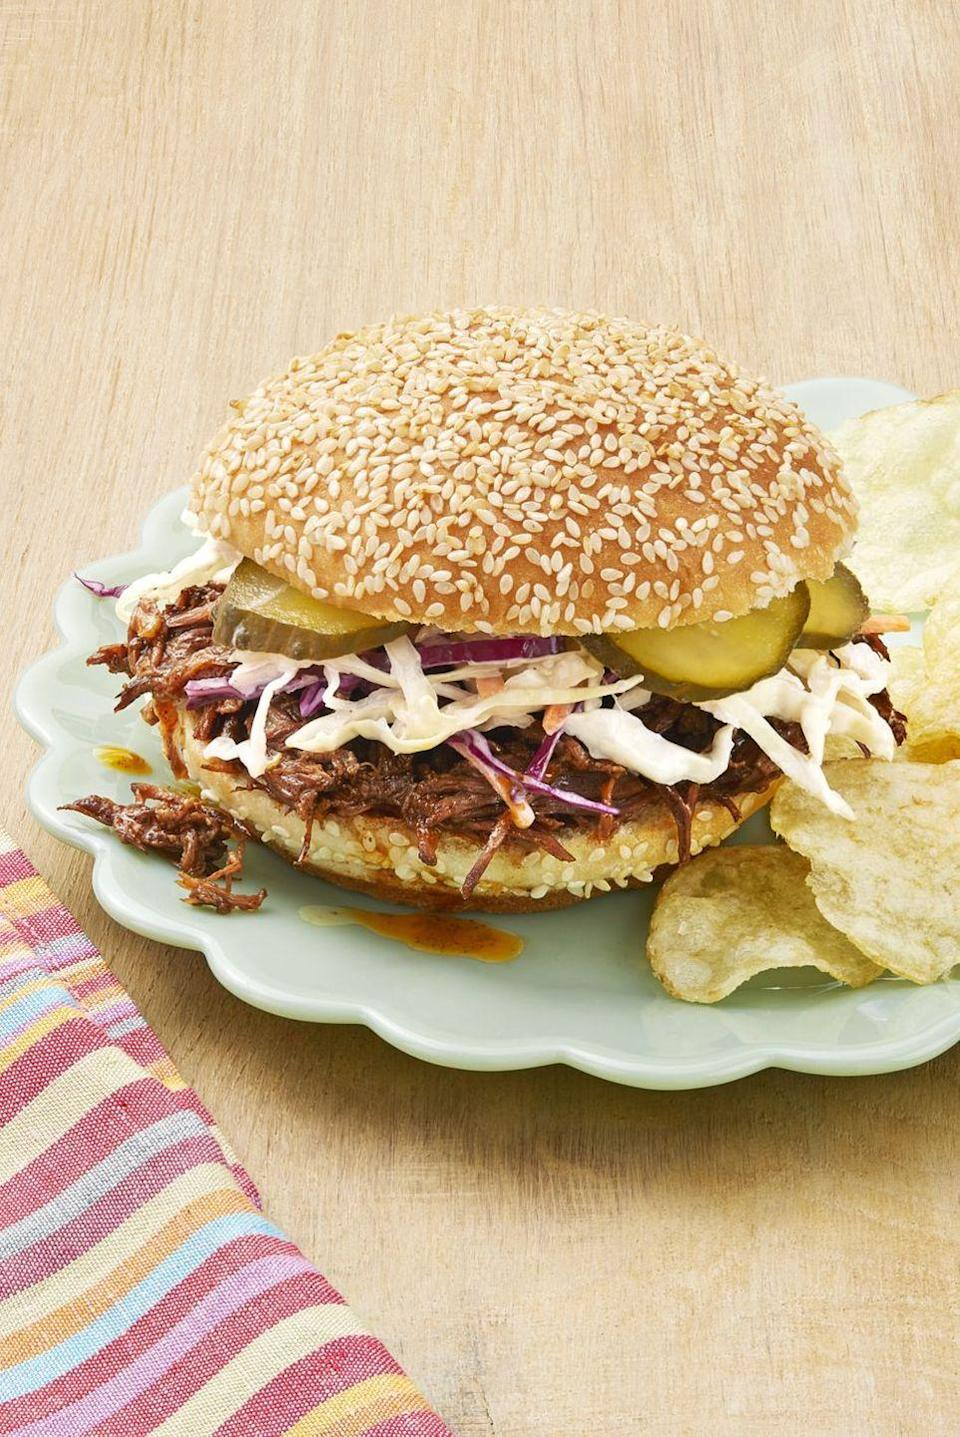 """<p>You'll feel full and ready to tackle game day, thanks to these shredded beef sandwiches. Top them with tangy coleslaw and pickles for a snappy crunch.</p><p><strong><a href=""""https://www.thepioneerwoman.com/food-cooking/recipes/a32530495/instant-pot-bbq-beef-sandwiches-recipe/"""" rel=""""nofollow noopener"""" target=""""_blank"""" data-ylk=""""slk:Get the recipe."""" class=""""link rapid-noclick-resp"""">Get the recipe.</a></strong></p><p><strong><a class=""""link rapid-noclick-resp"""" href=""""https://go.redirectingat.com?id=74968X1596630&url=https%3A%2F%2Fwww.walmart.com%2Fbrowse%2Fthe-pioneer-woman-kitchen-appliances%2Fc2hlbGZfaWQ6ODEwOQieie&sref=https%3A%2F%2Fwww.thepioneerwoman.com%2Ffood-cooking%2Fmeals-menus%2Fg35049189%2Fsuper-bowl-food-recipes%2F"""" rel=""""nofollow noopener"""" target=""""_blank"""" data-ylk=""""slk:SHOP INSTANT POTS"""">SHOP INSTANT POTS</a><br></strong></p>"""